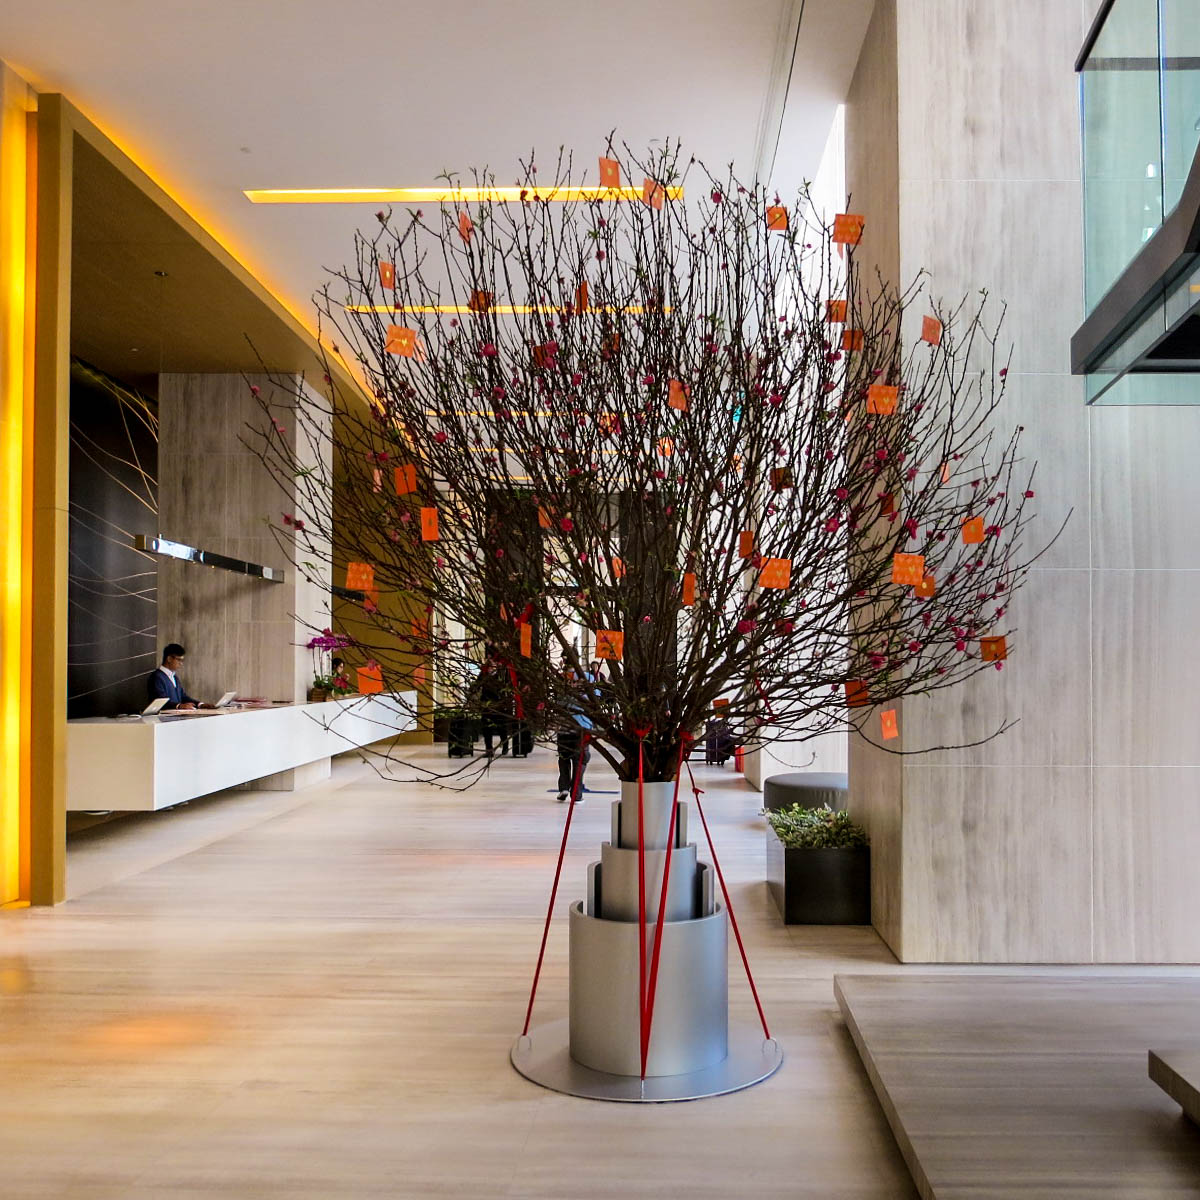 Business hotel in hong kong east hotel - Lifestyle Enthusiast East Hotel Hong Kong Tree In Lobby